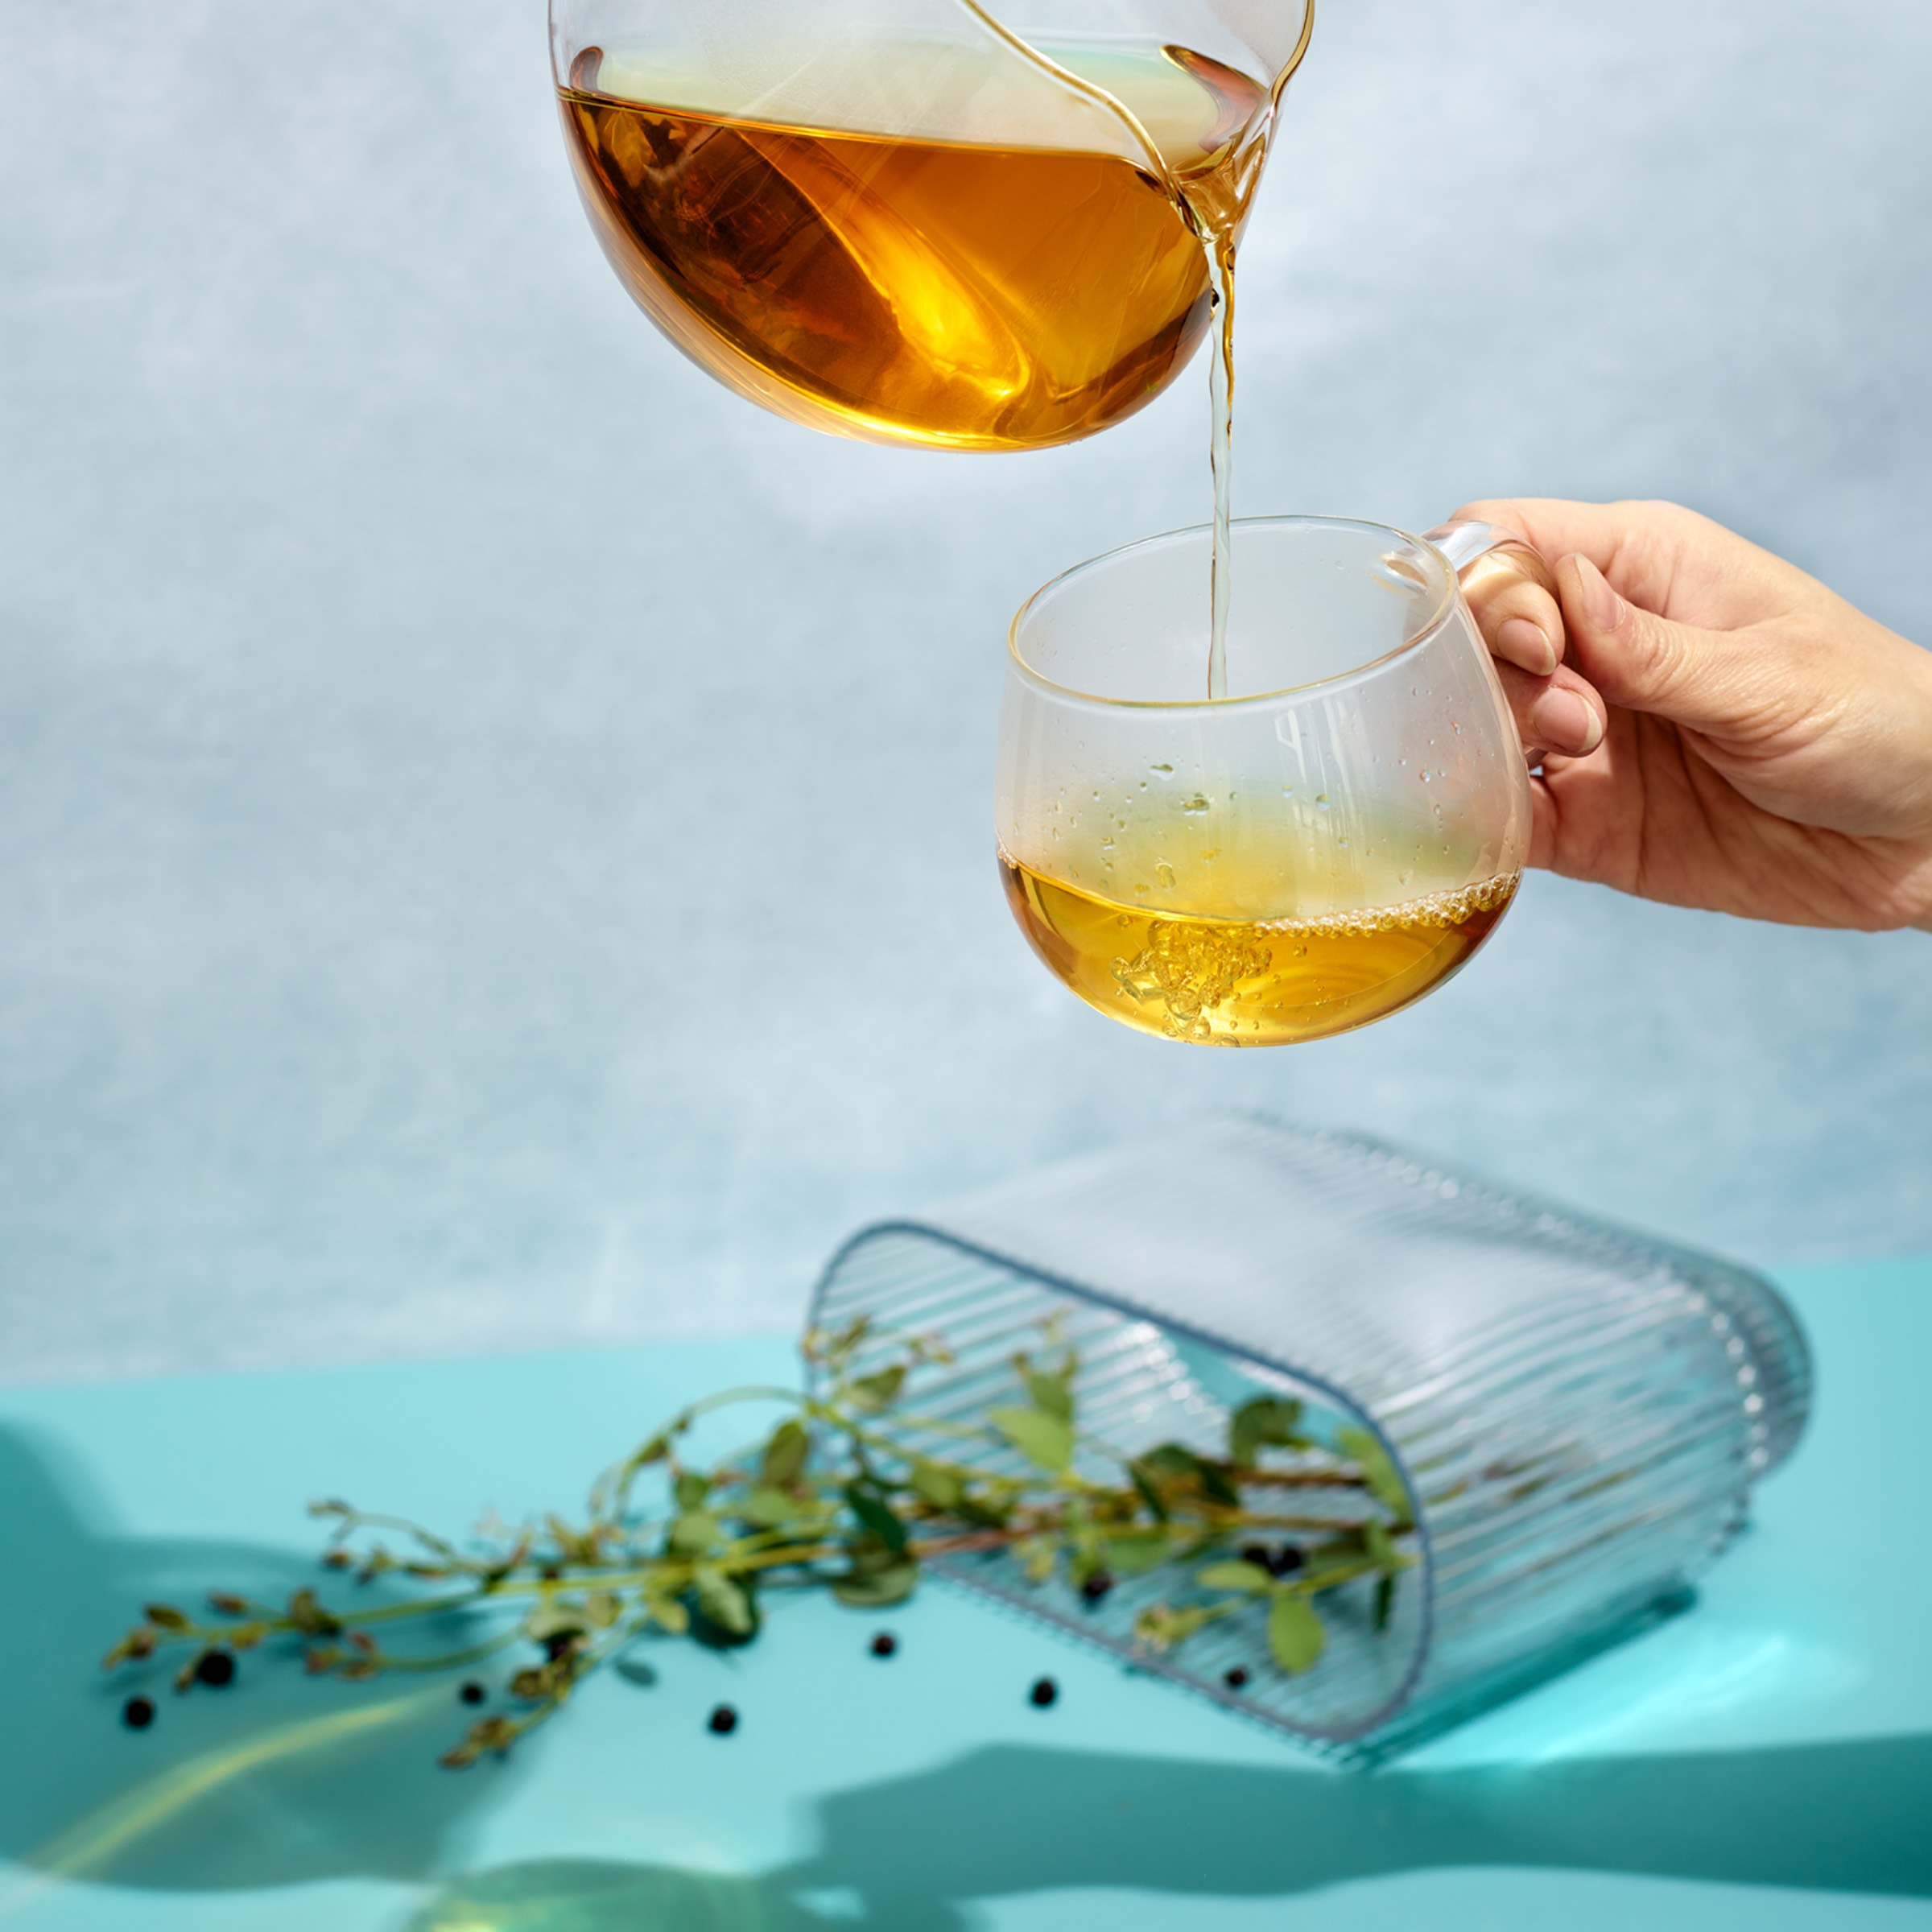 Tea being poured in a glass cup above a plant vase tipped on its side.